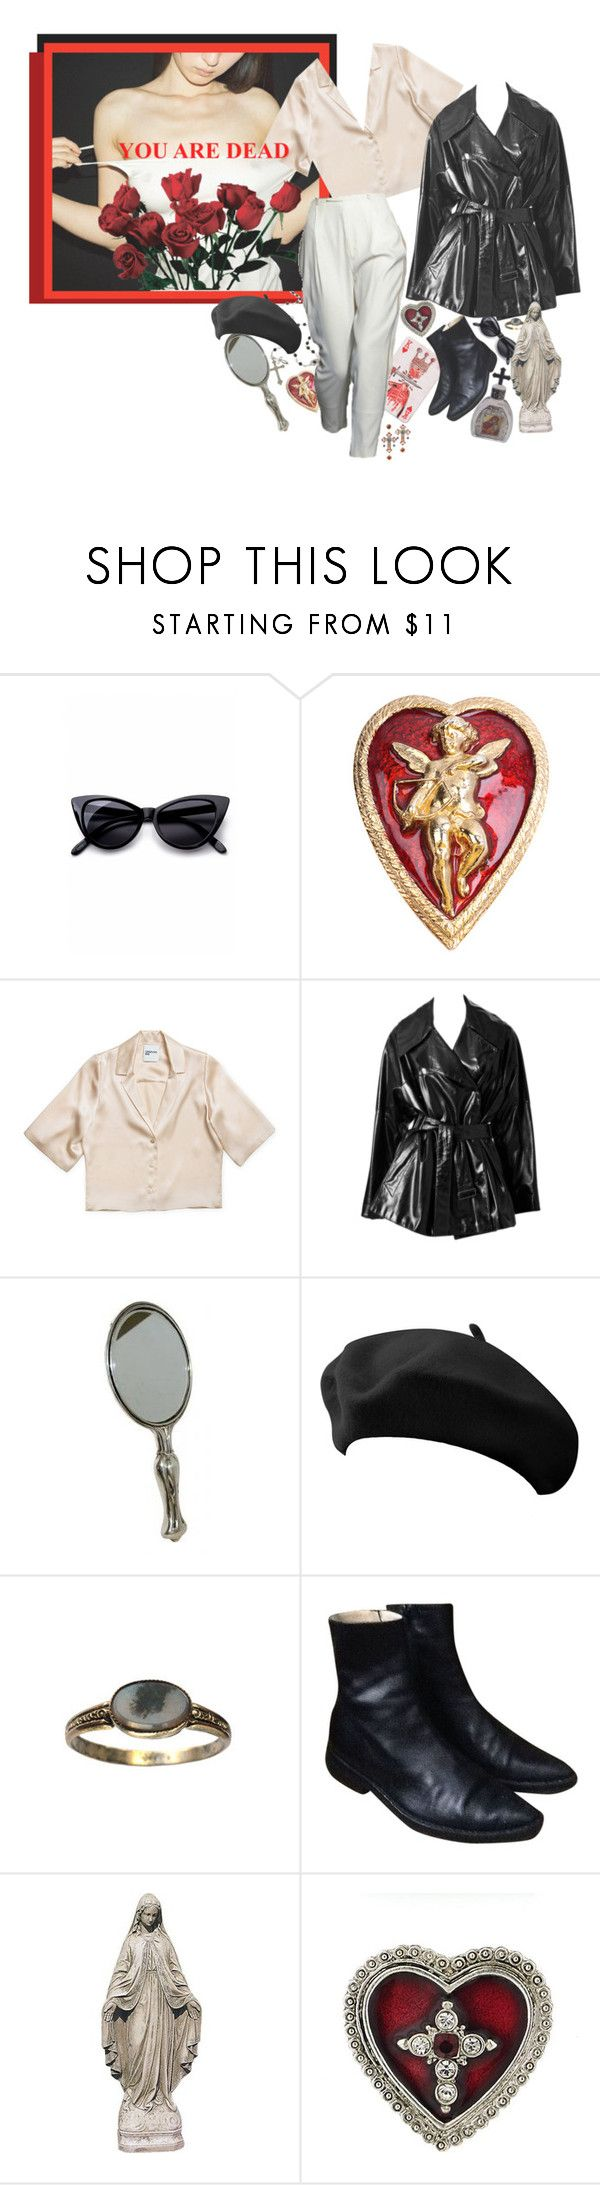 """her who slayed the king"" by die-kunstlerin ❤ liked on Polyvore featuring Retrò, Susan Caplan Vintage, Alaïa, Dolce&Gabbana, Ann Demeulemeester, Doo.Ri and 1928"